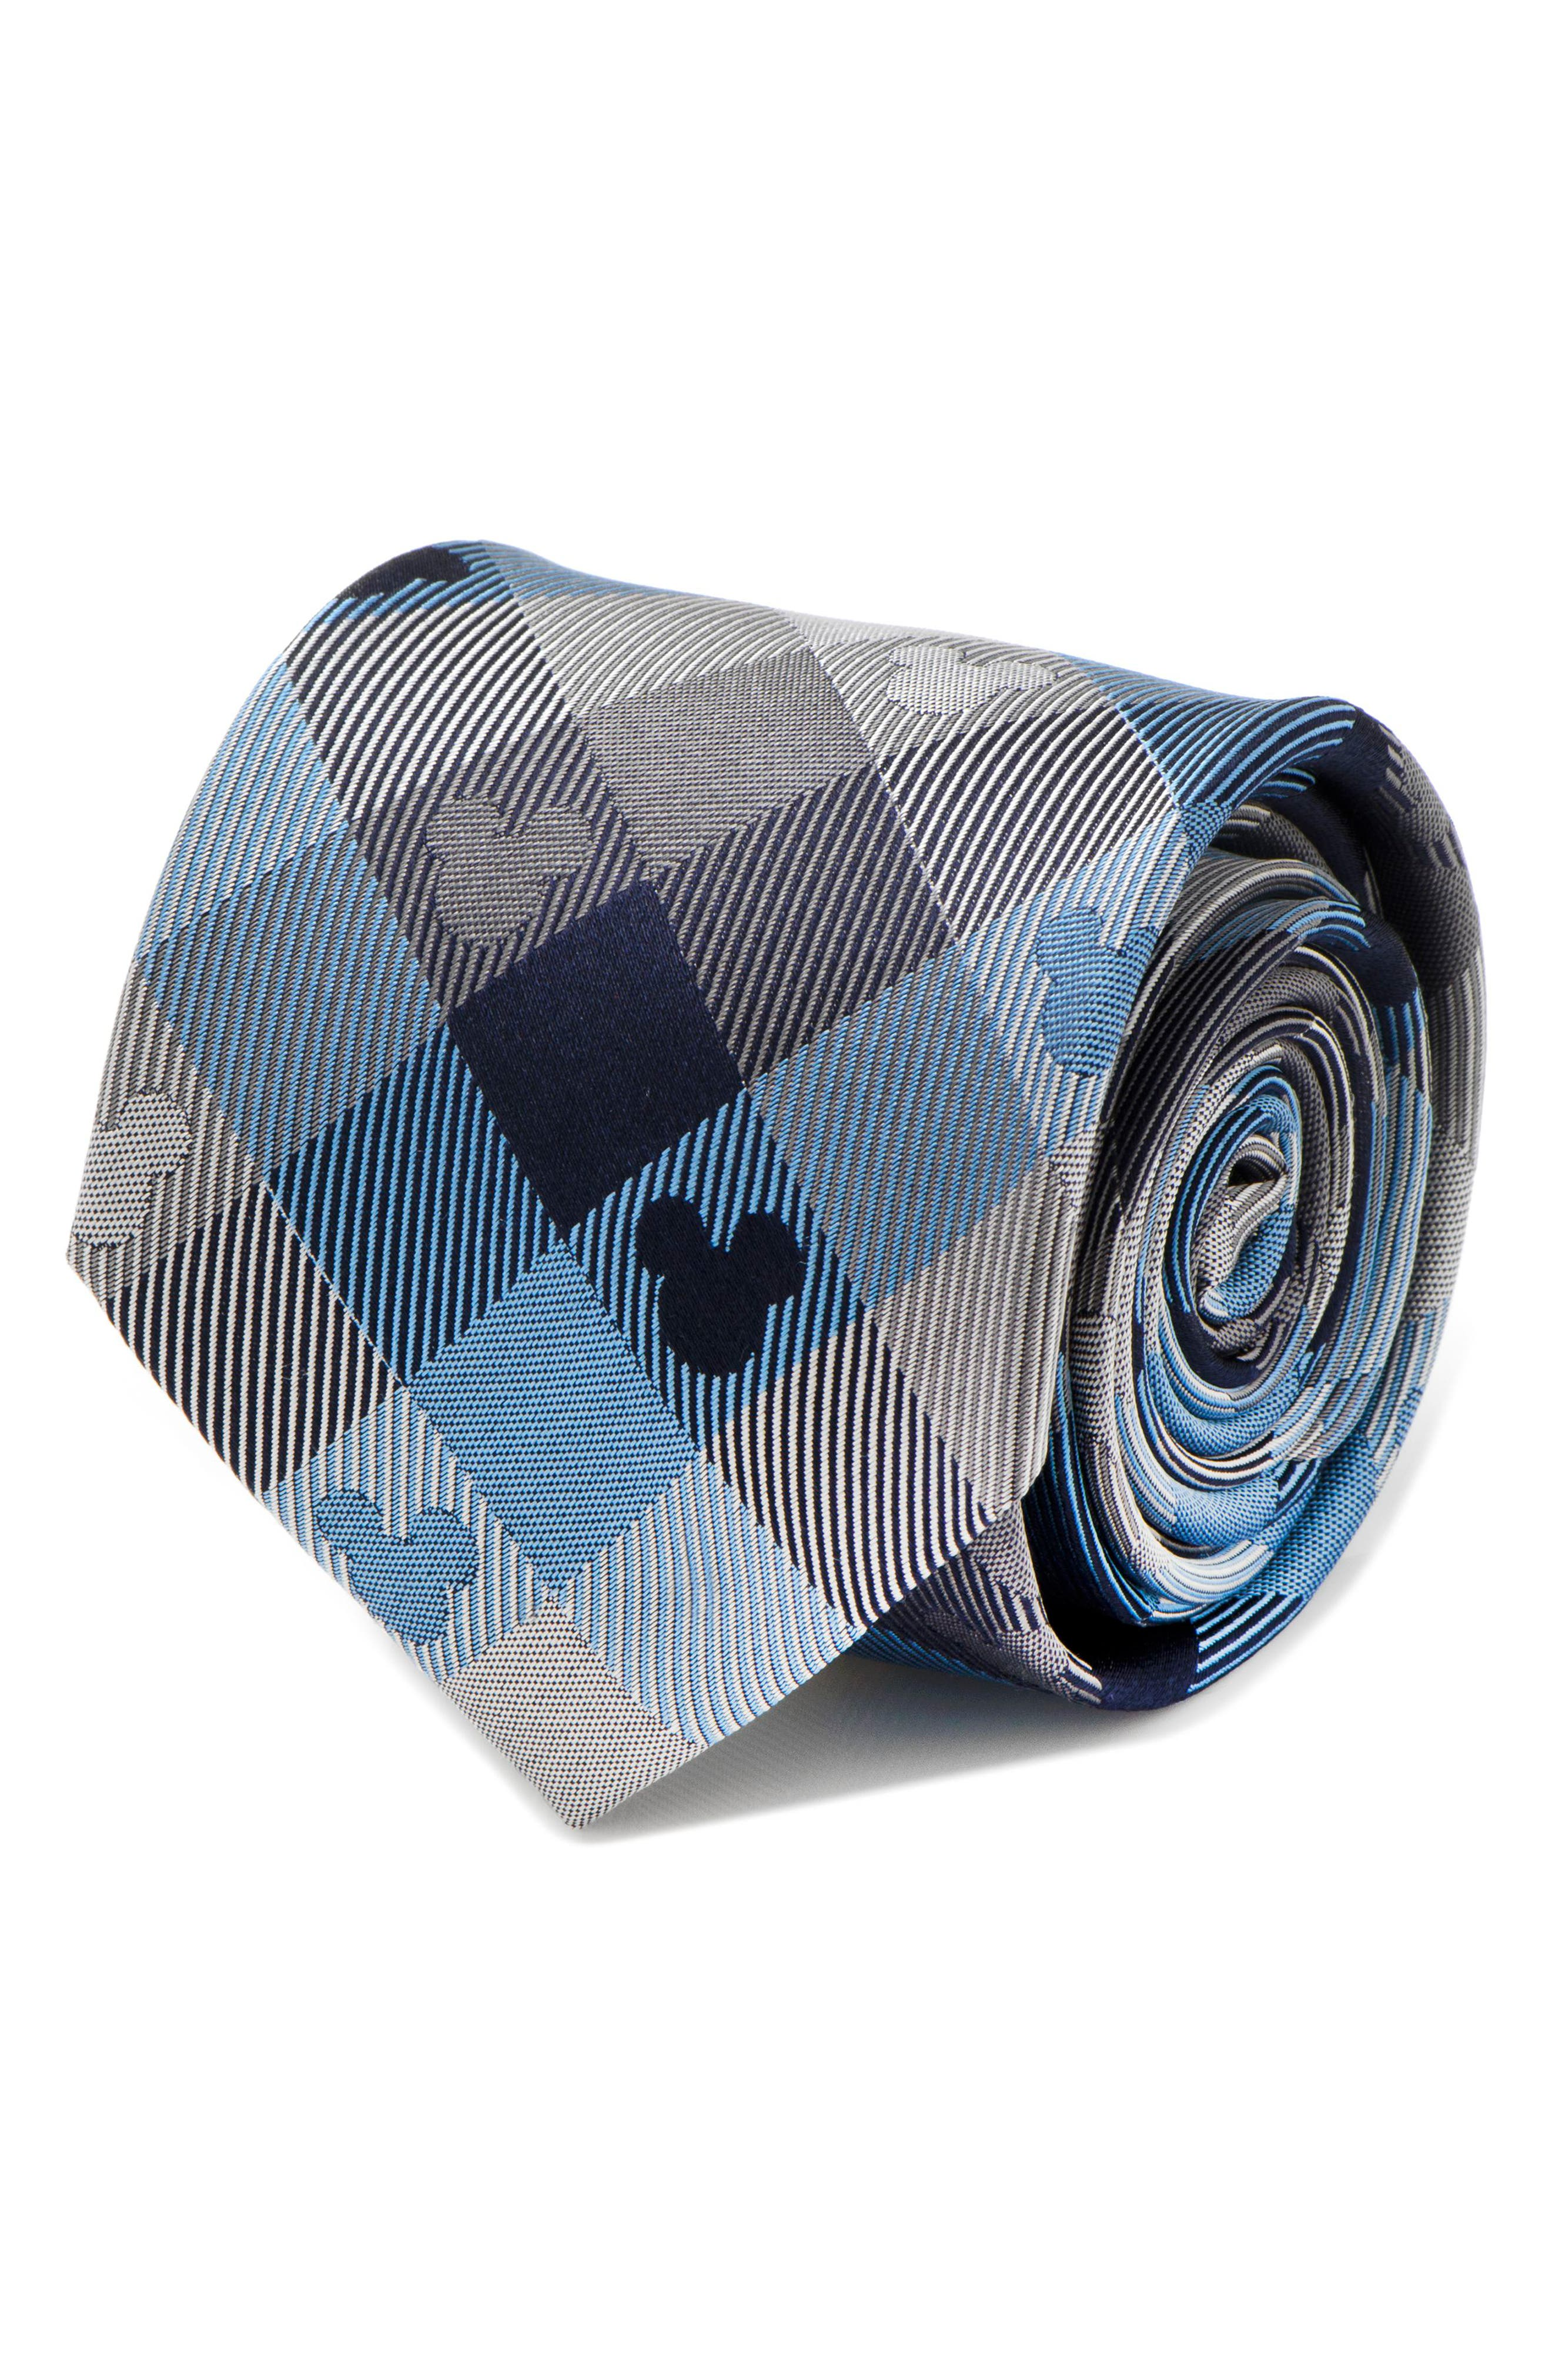 Mickey Mouse Plaid Silk Tie,                             Alternate thumbnail 5, color,                             BLUE/ GREY